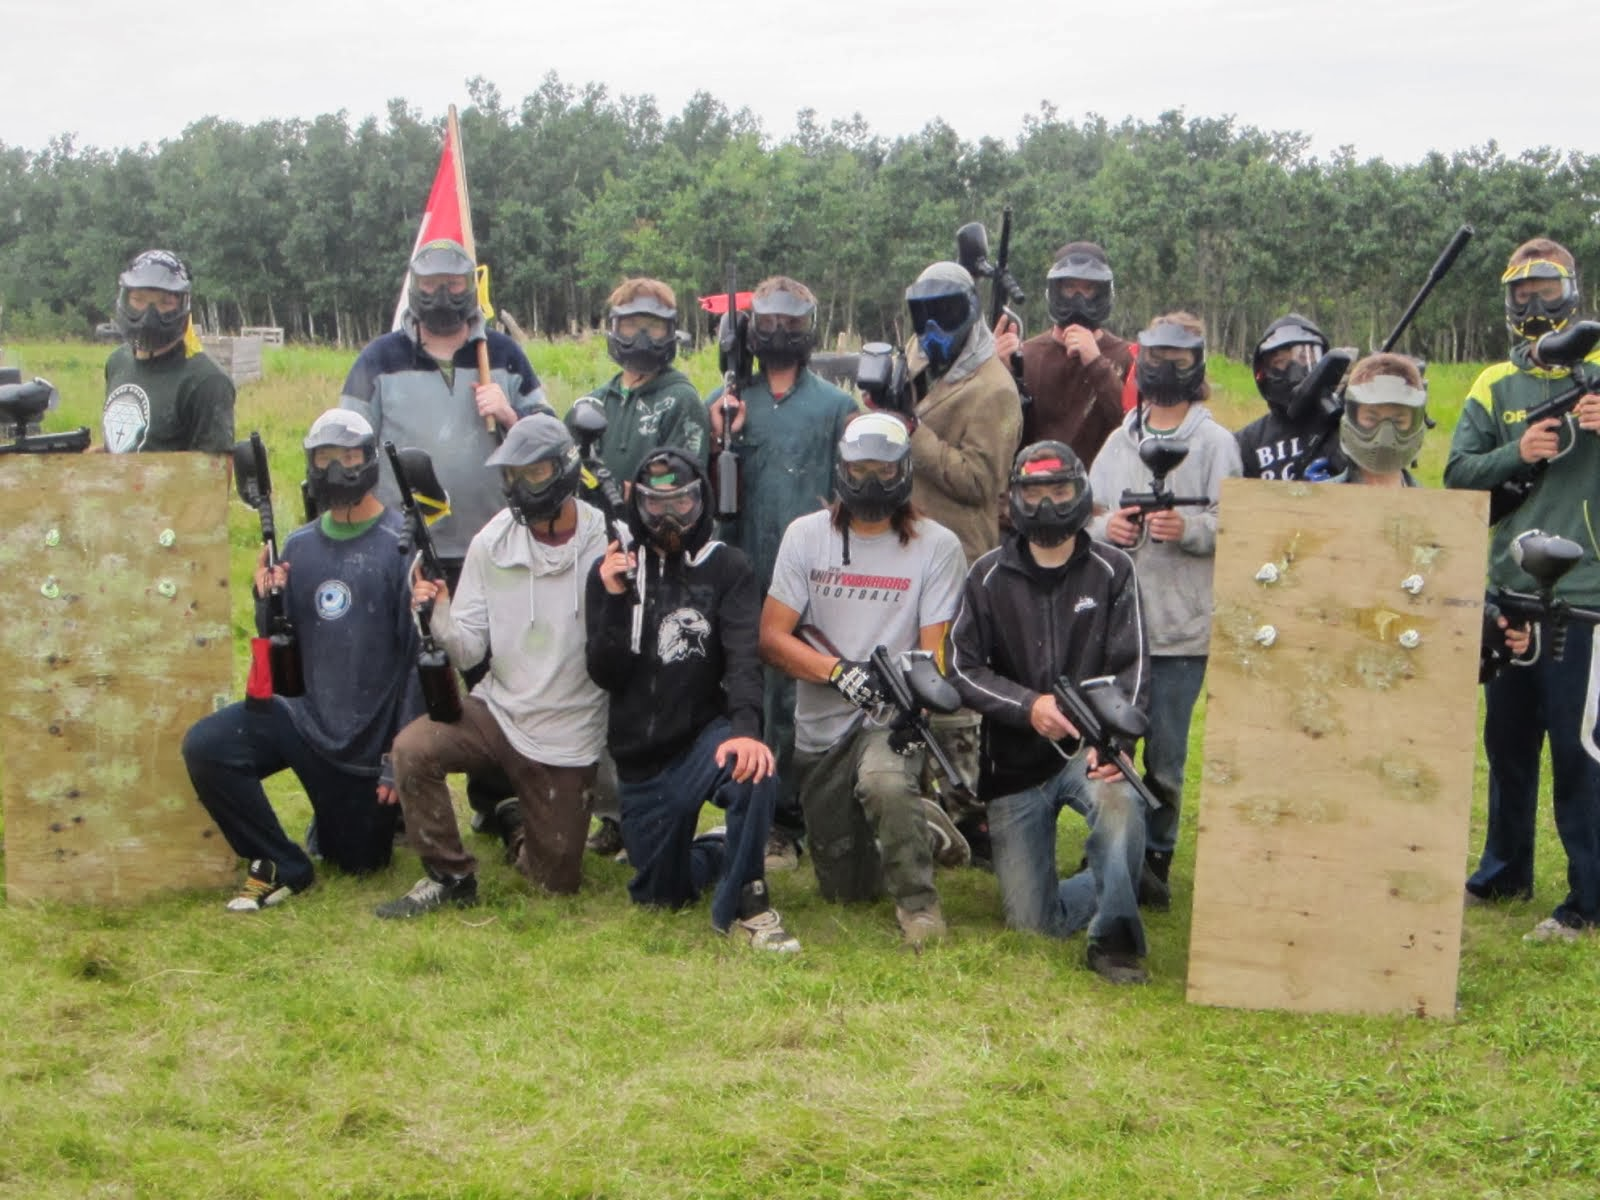 Paintball...